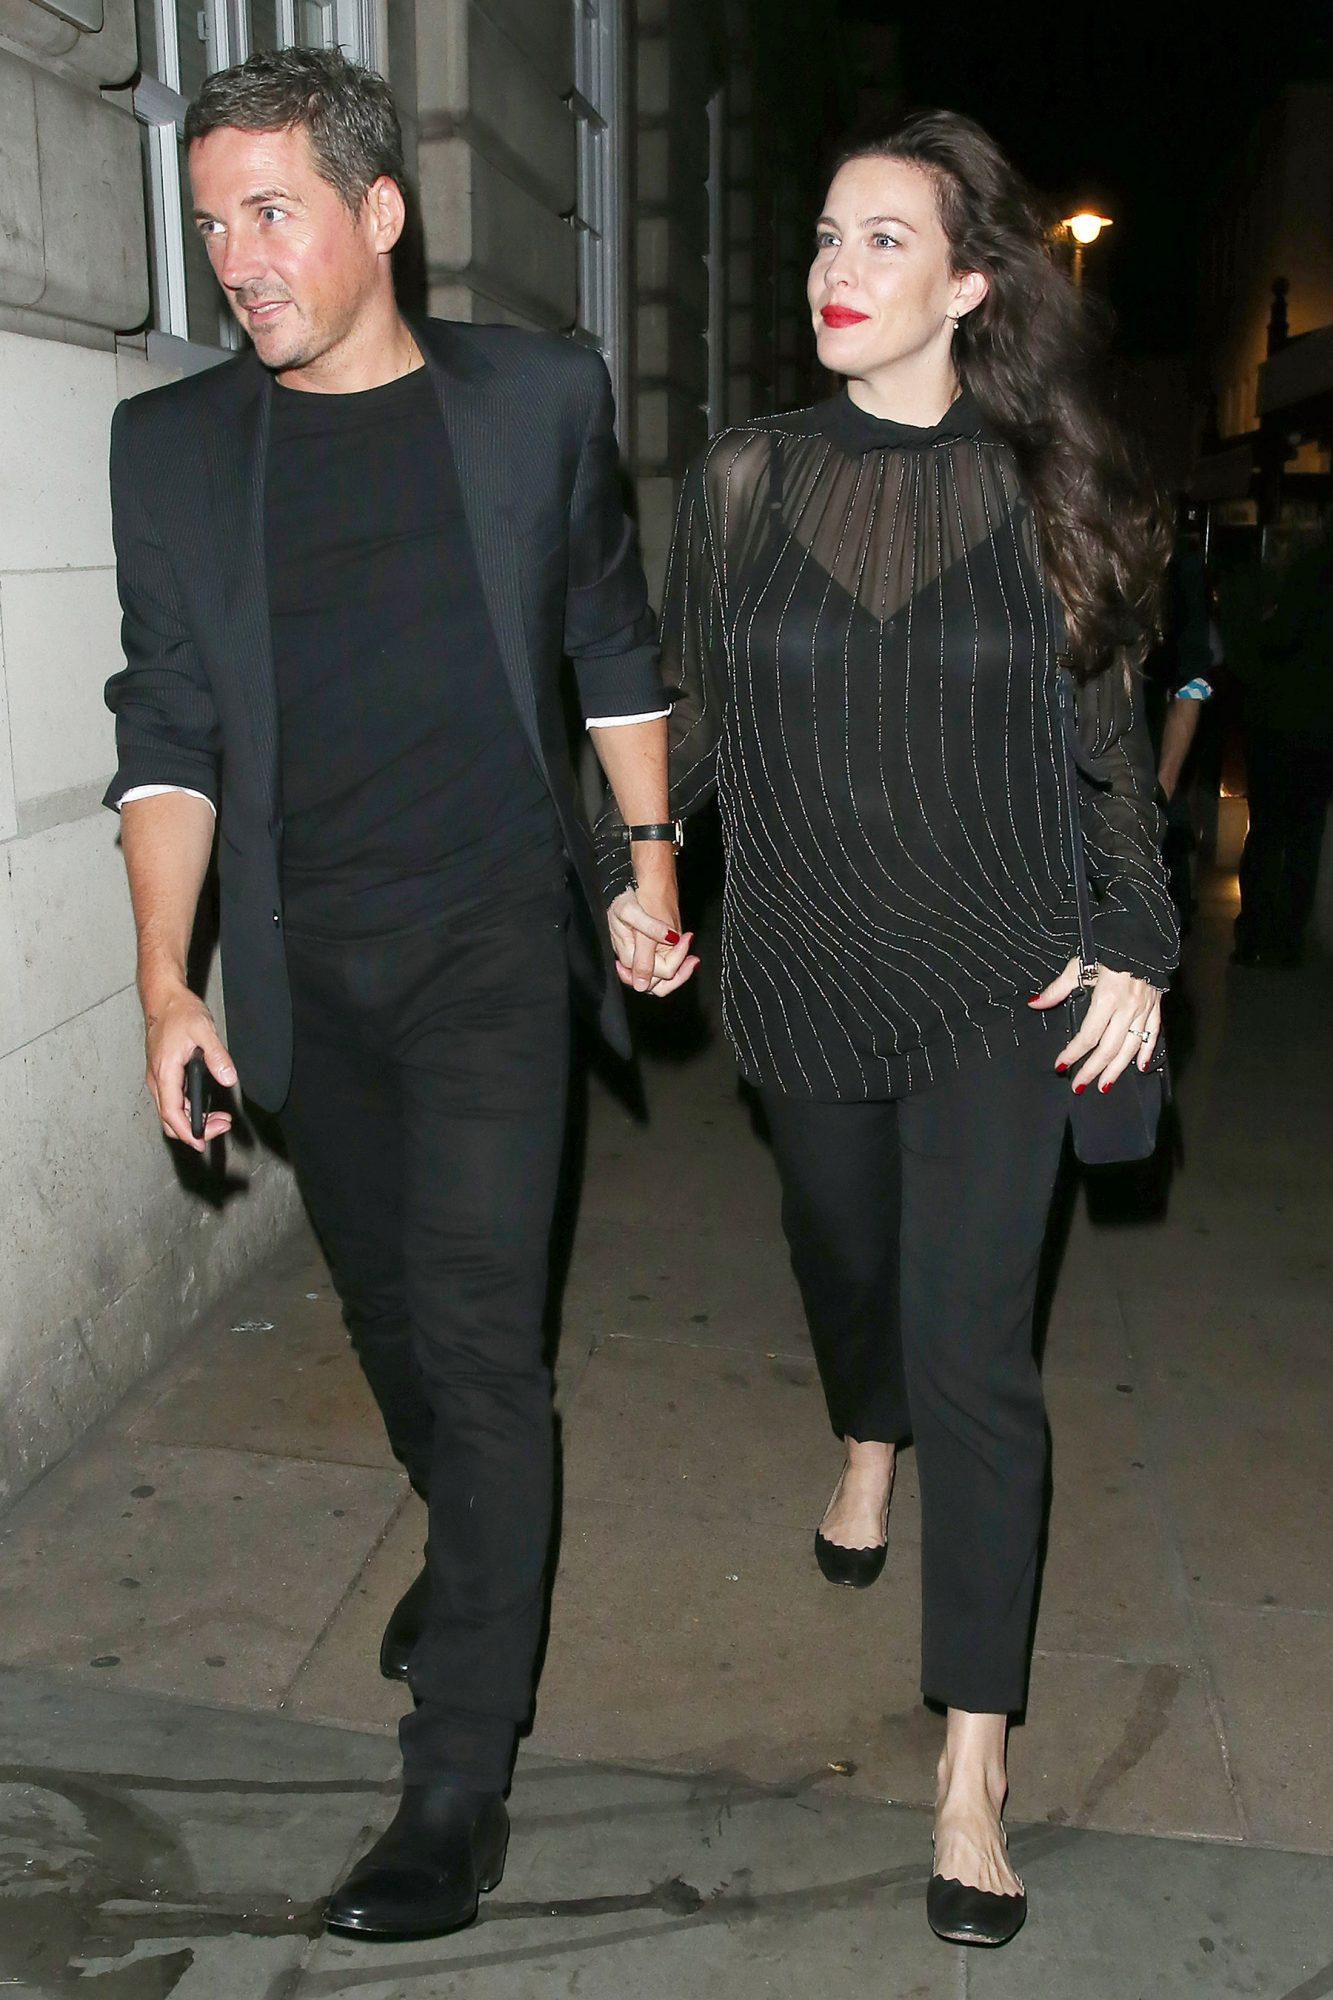 Liv Tyler and Dave Gardner are Pictured Leaving Loulou's Private Members Club in Mayfair, London.